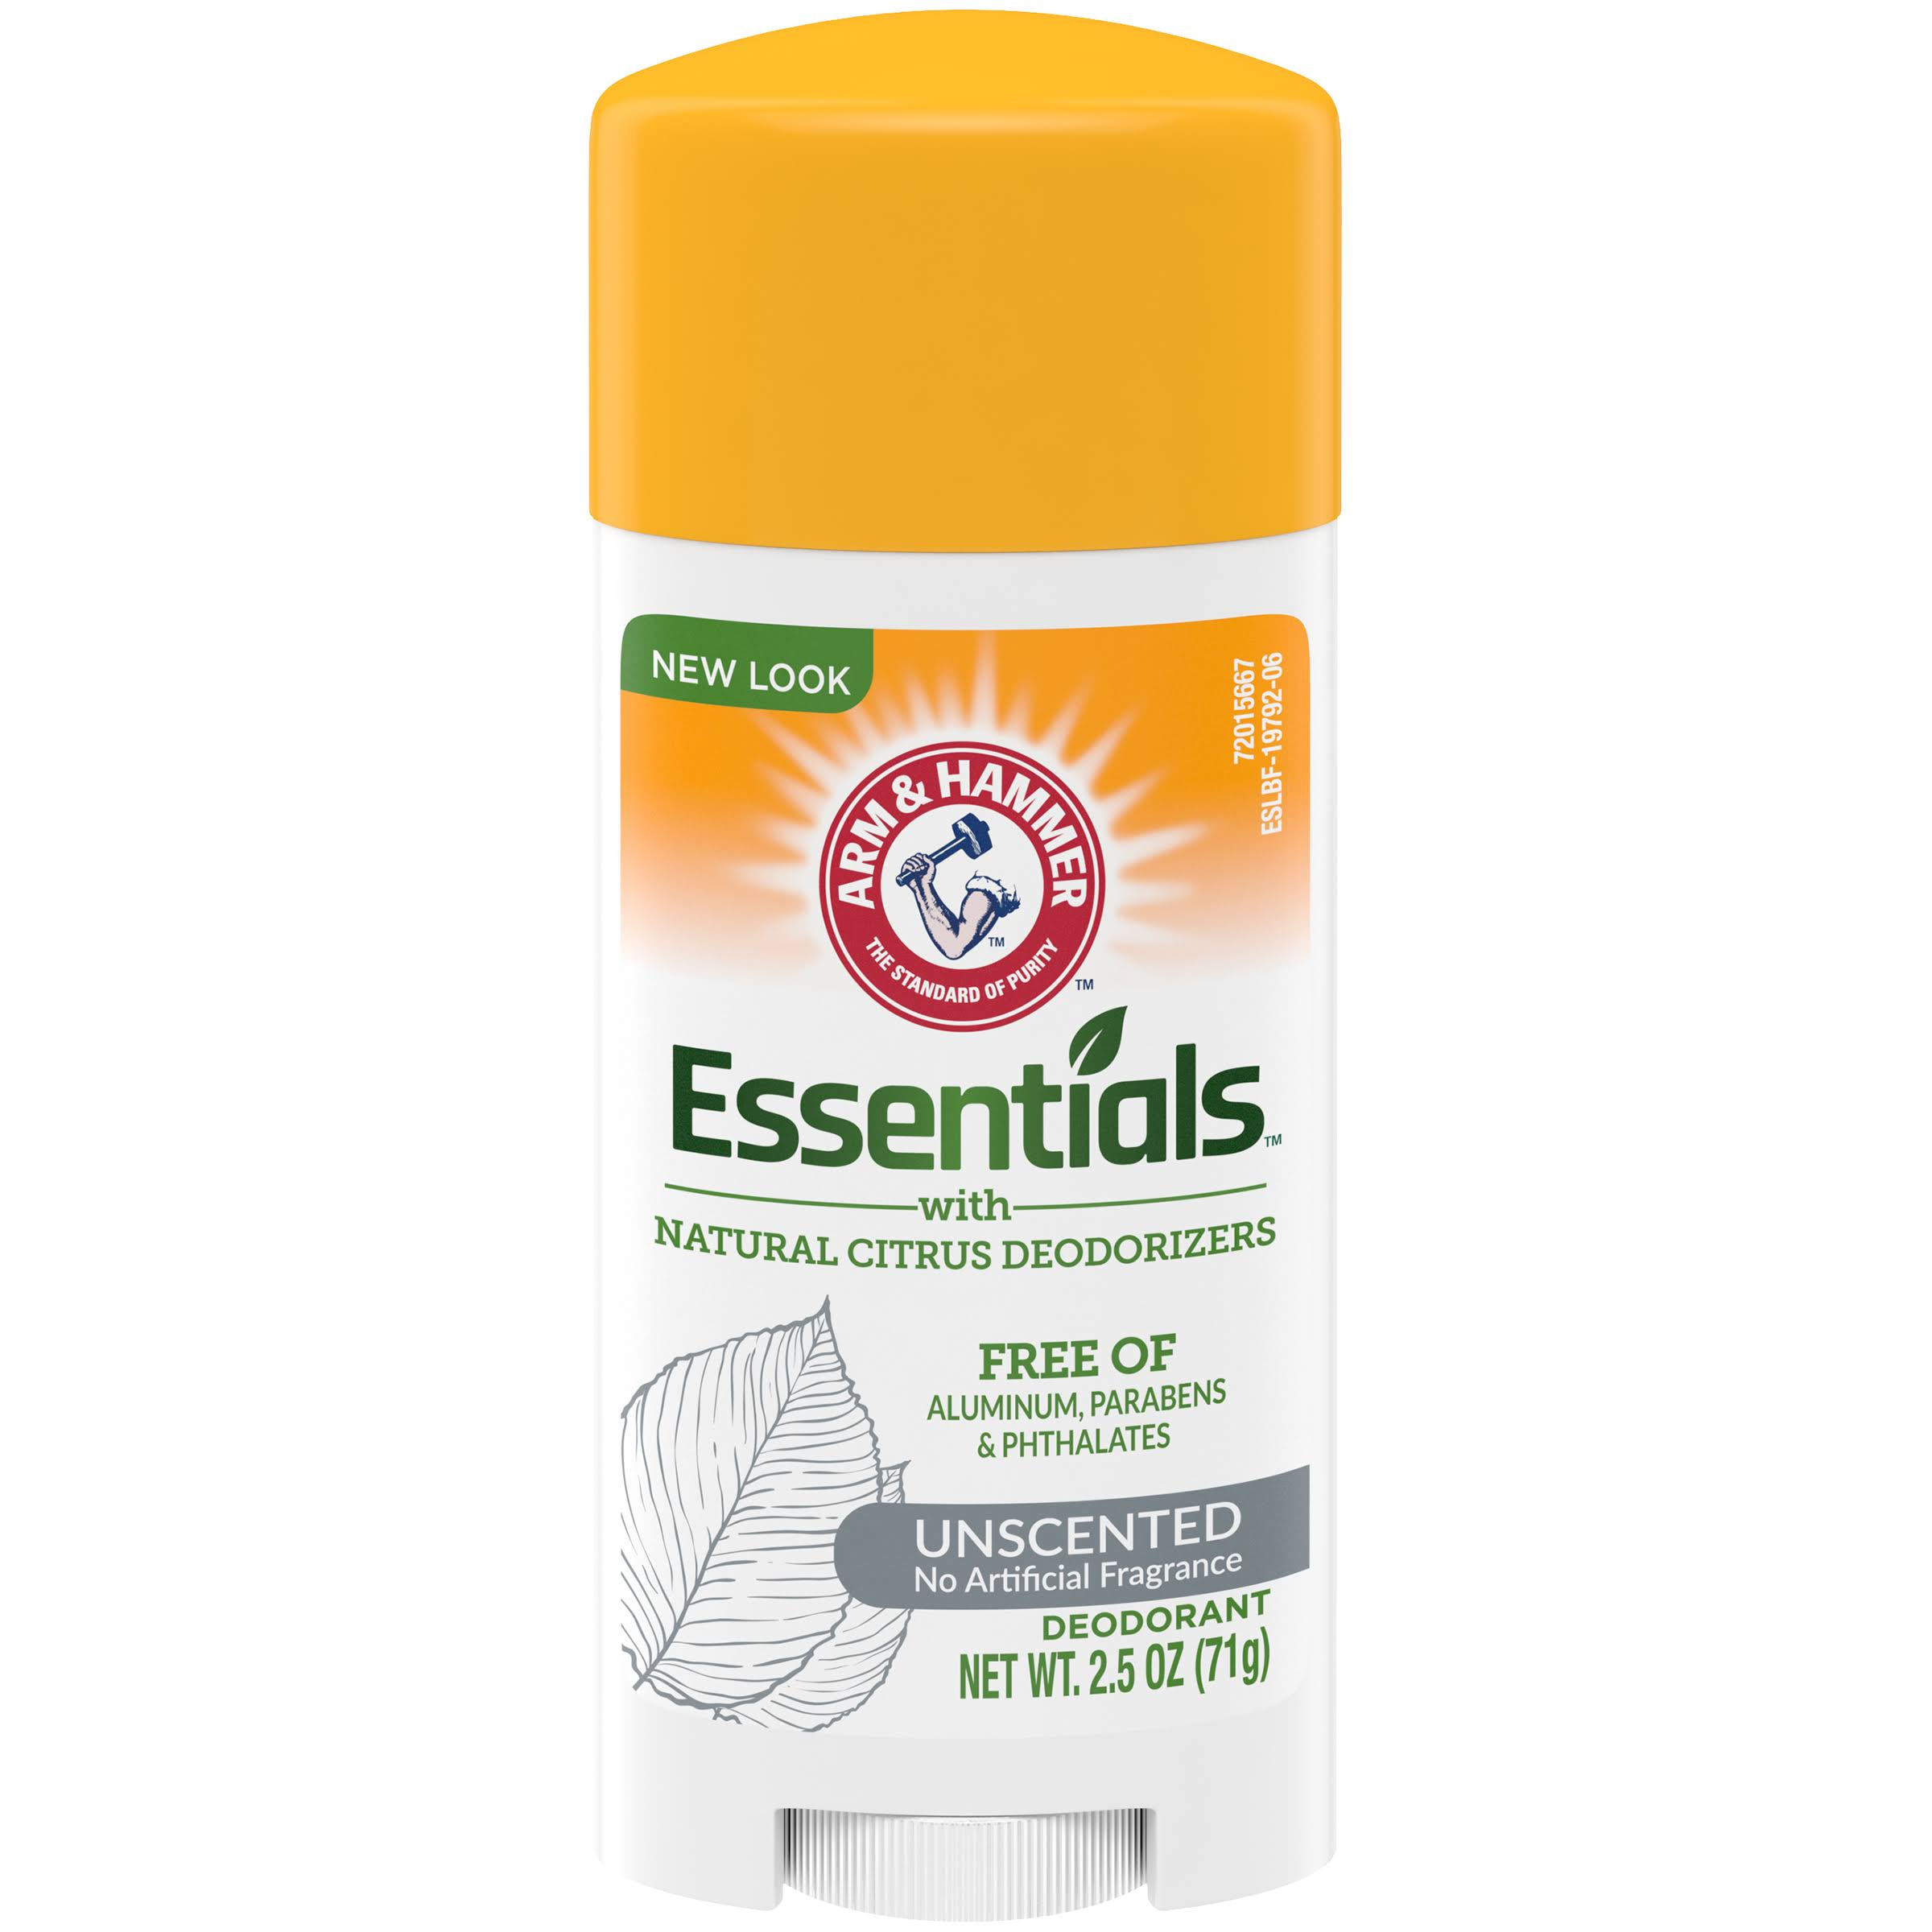 Arm and Hammer Essentials Solid Deodorant - Unscented, 2.5oz